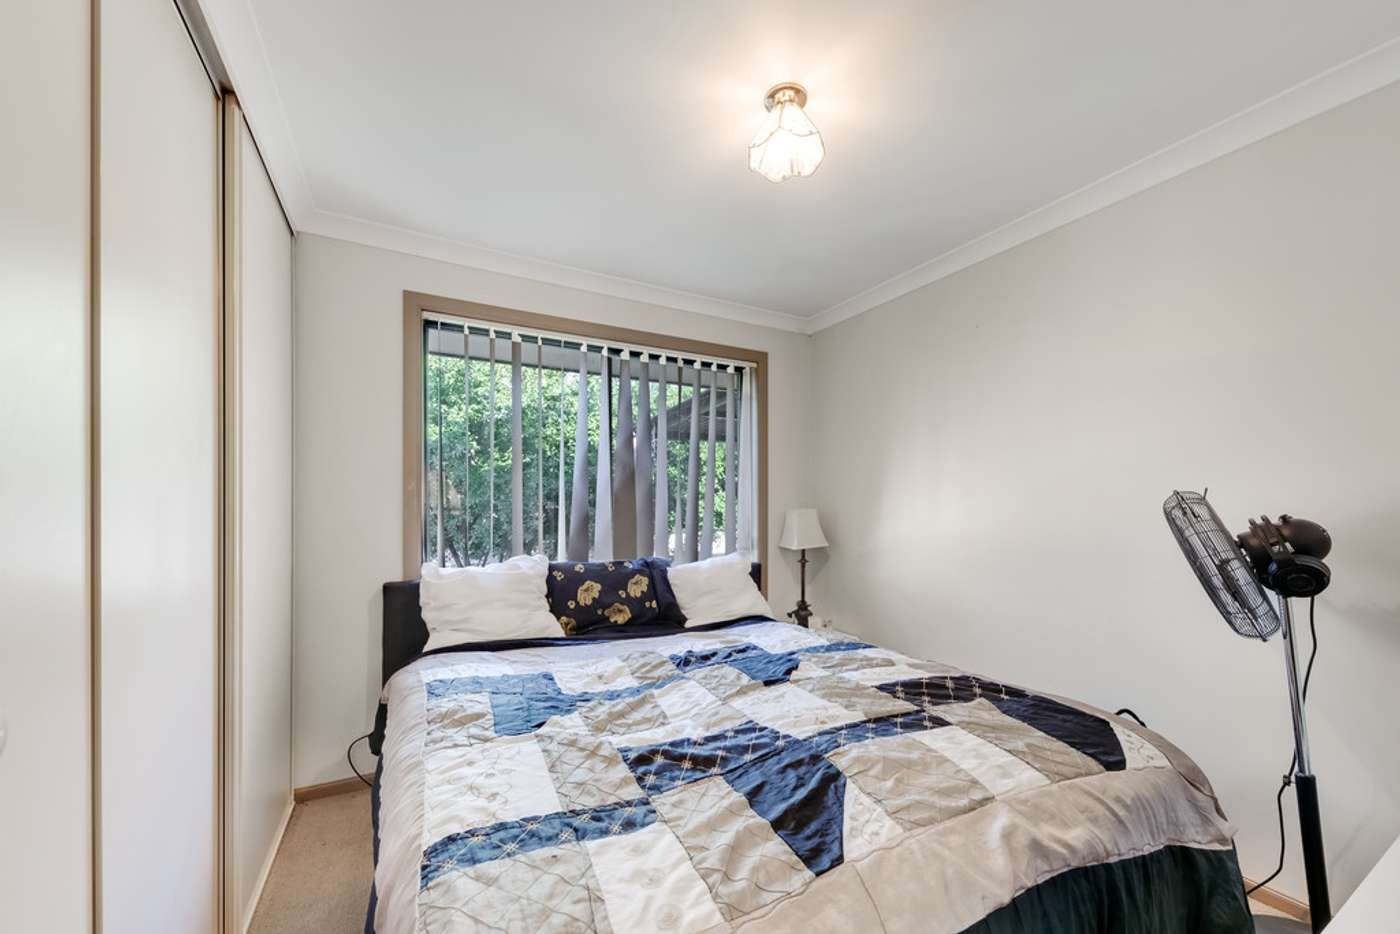 Seventh view of Homely house listing, 9 Rosella Mews, Wodonga VIC 3690